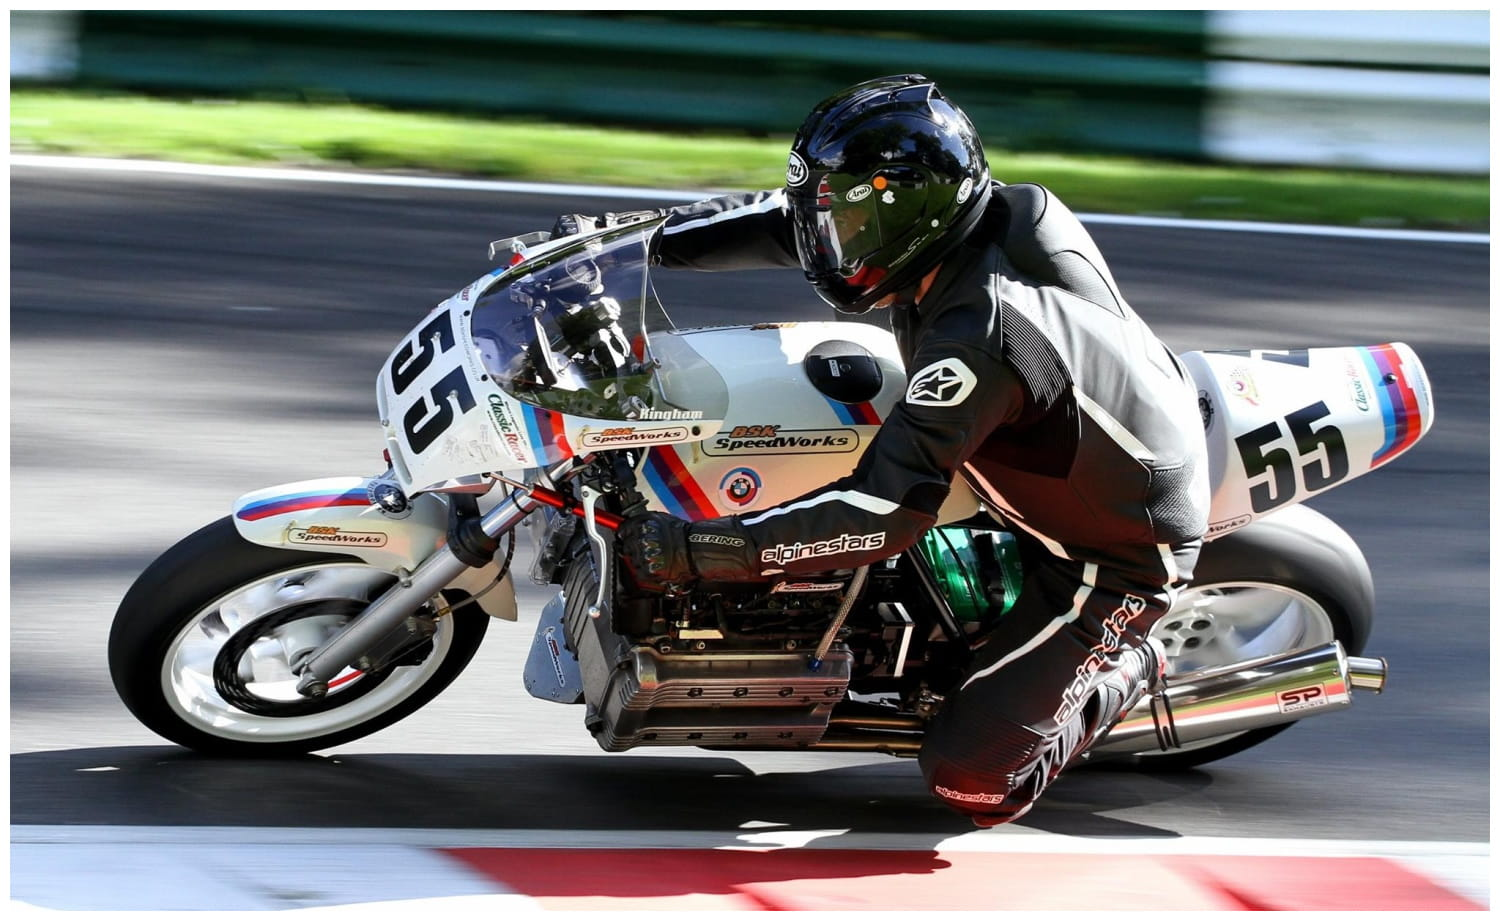 BSK SpeedWorks BMW K100 Racer, F1 B.E.A.R.S champions 2015